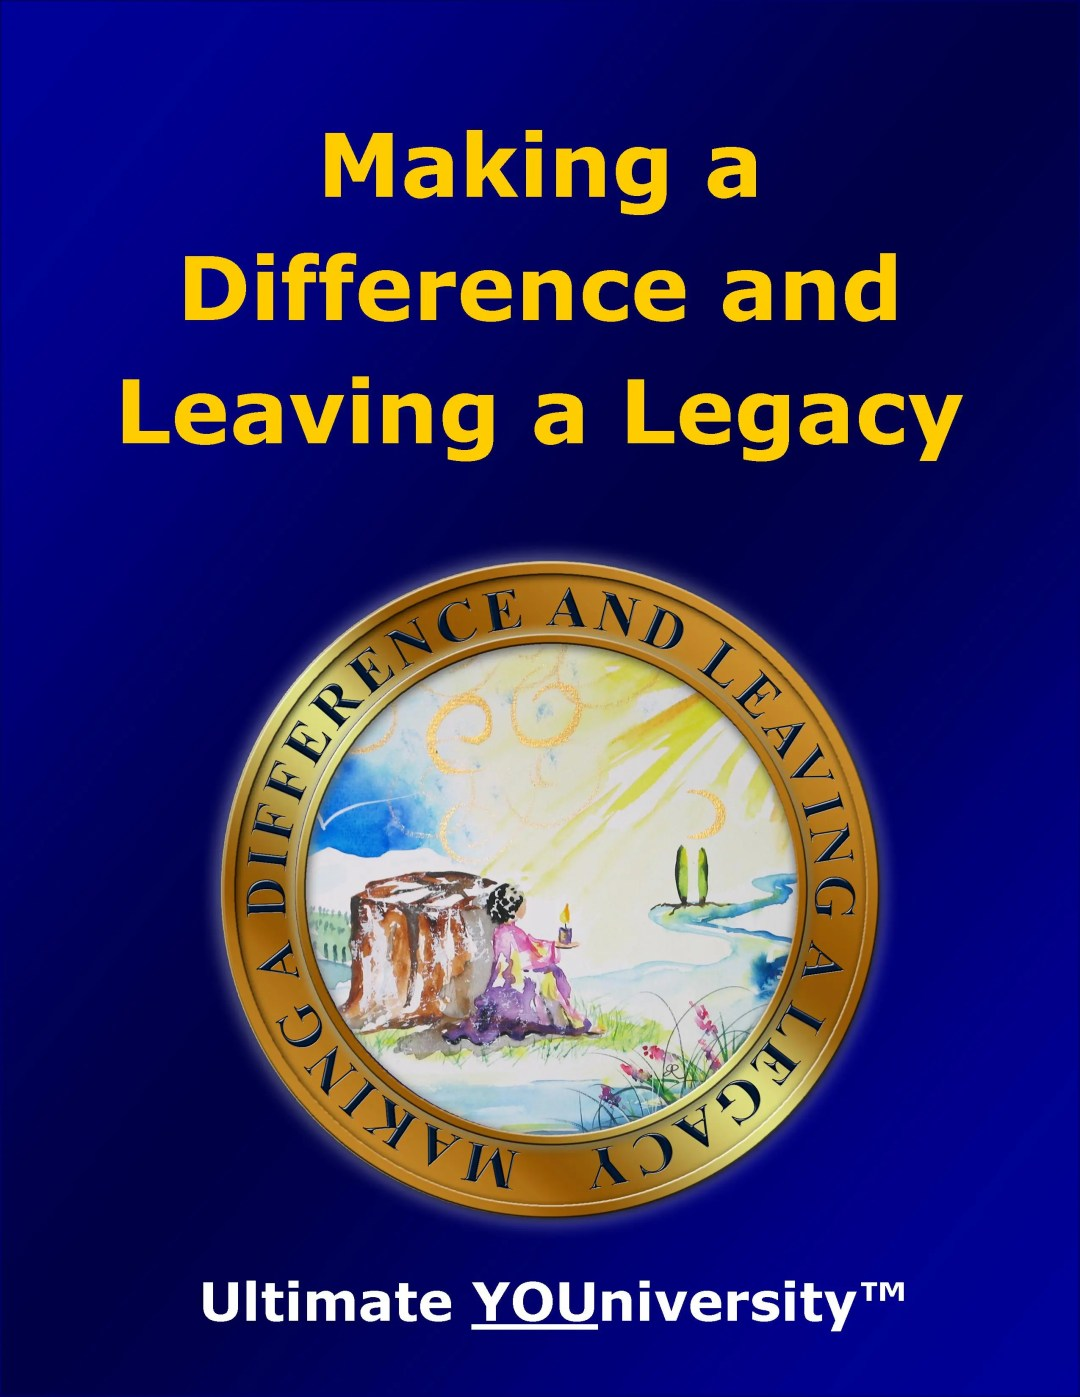 Making a Difference and Leaving a Legacy, one of the 14 Categories